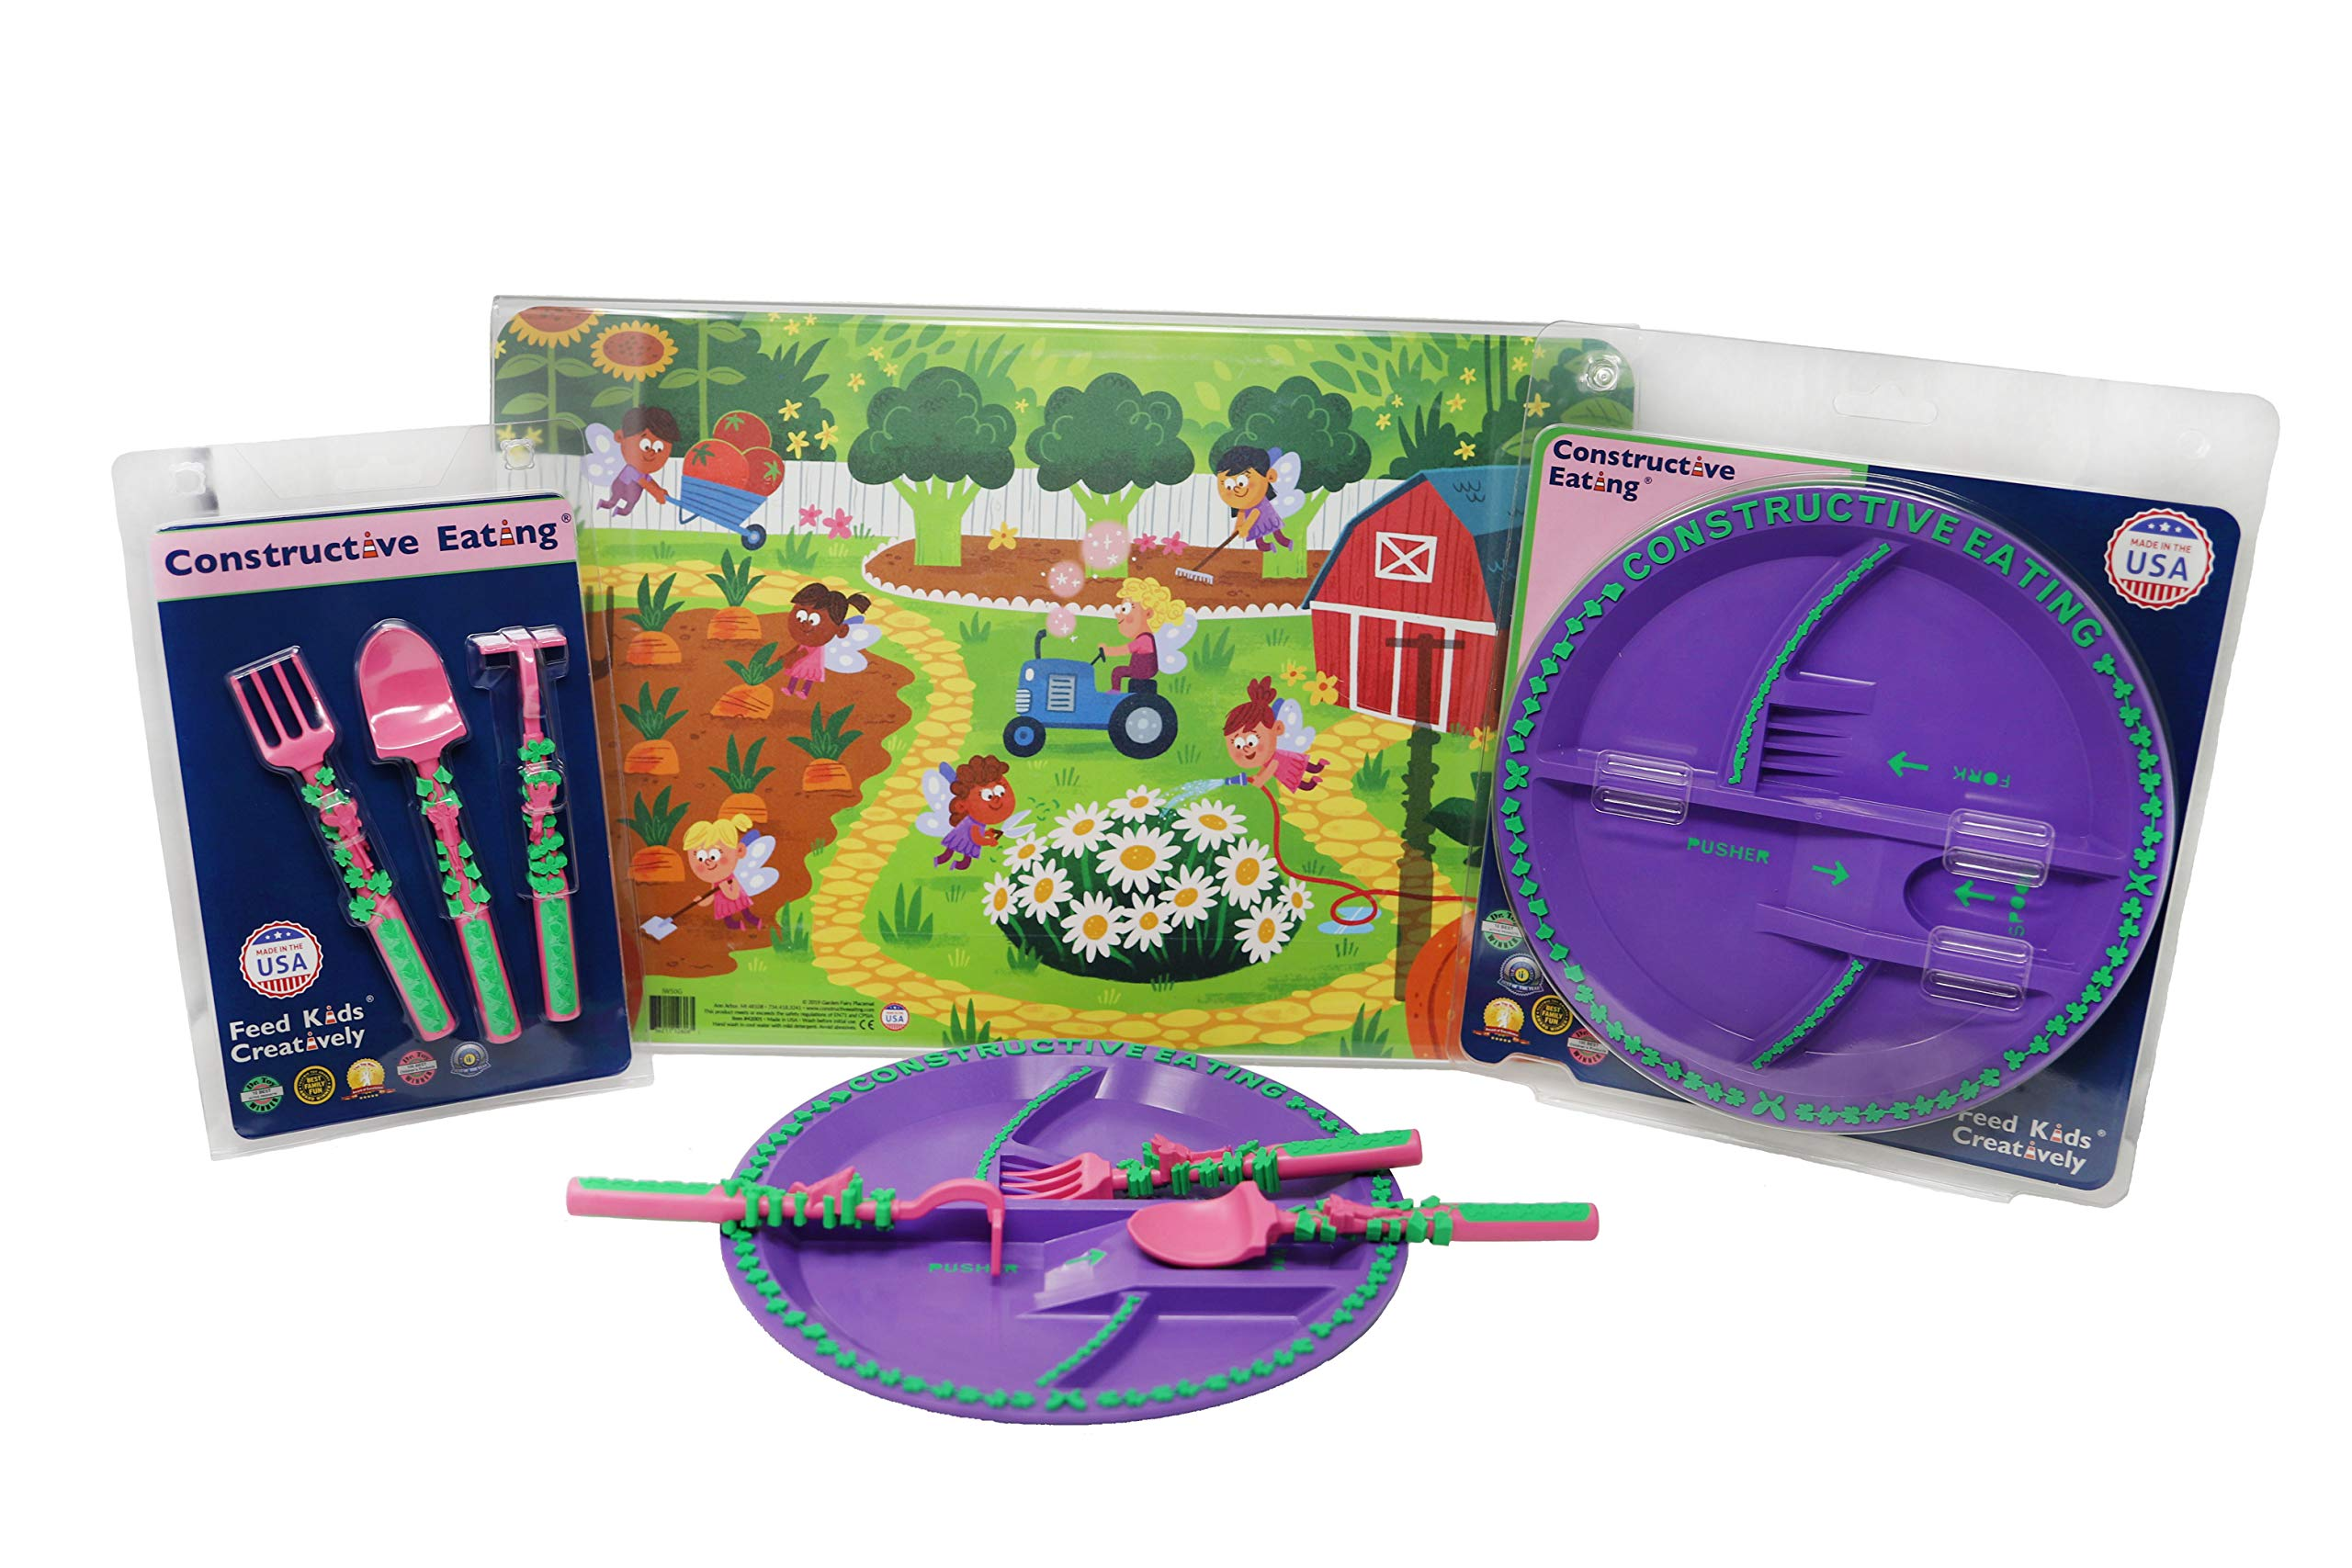 Constructive Eating Garden Fairy Combo with Utensil Set, Plate and Placemat for Toddlers, Babies and Kids - Flatware Toys are Made in The USA with FDA Approved Materials for Safe and Fun Eating by Constructive Eating